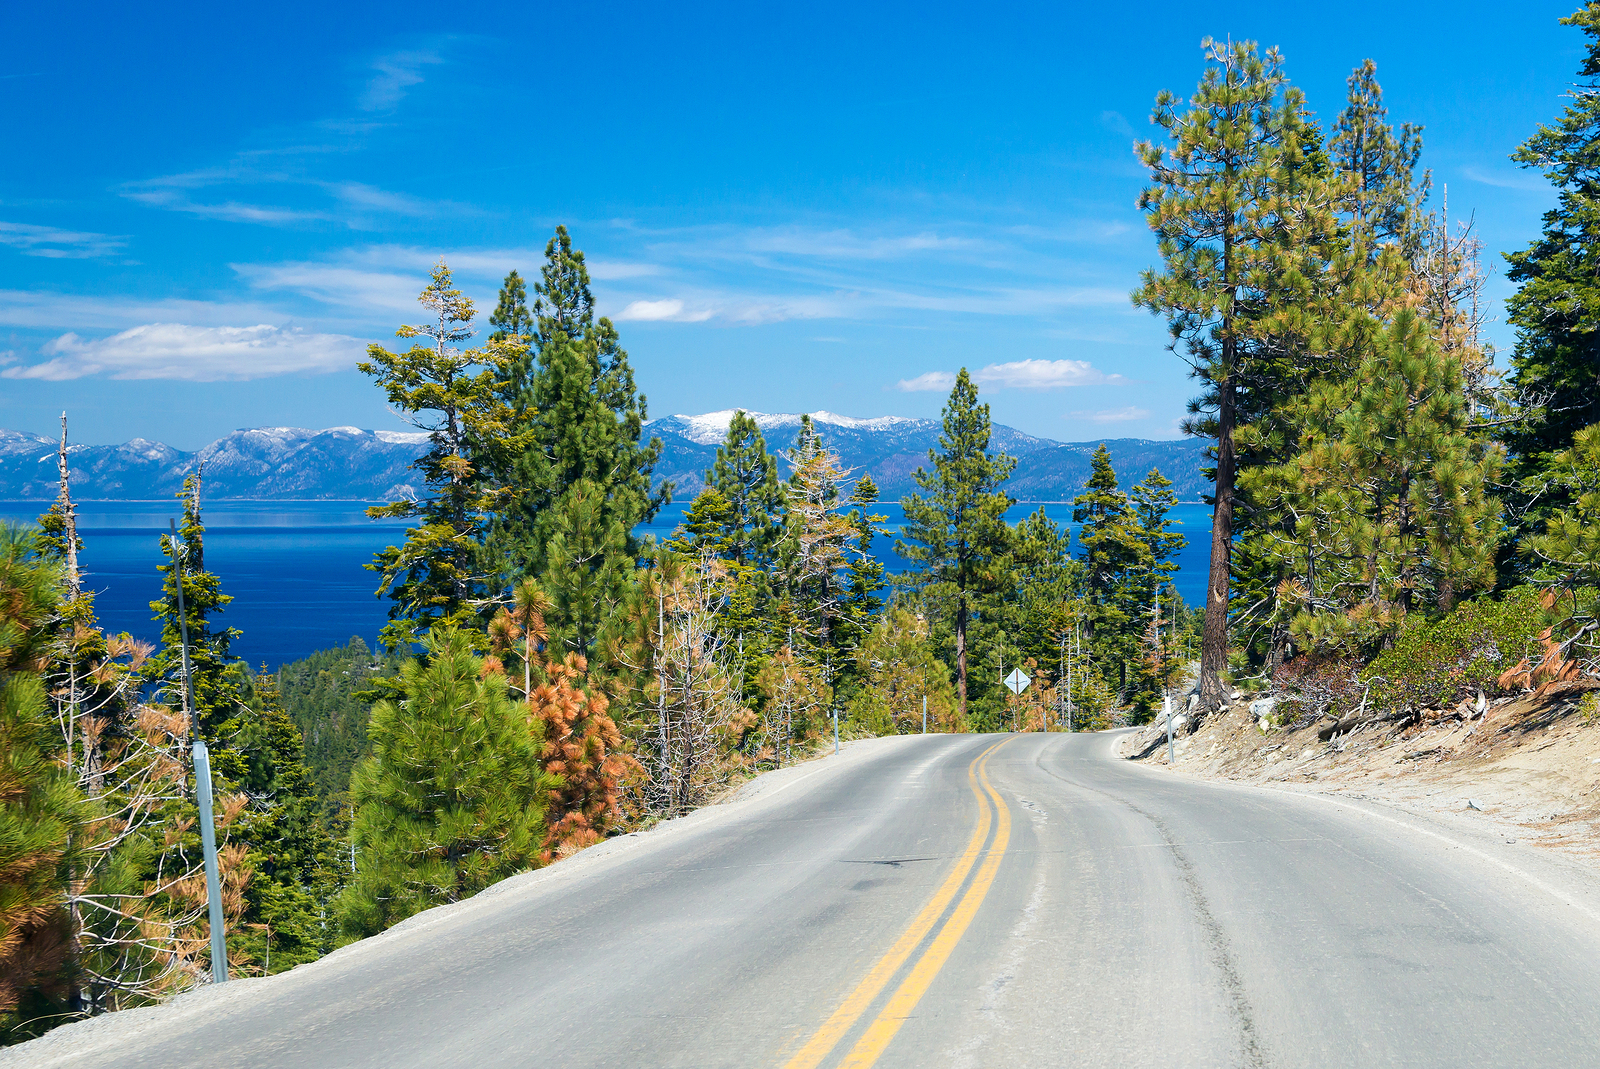 Image of scenic route along the Lake Tahoe, USA for dui lawyer and criminal defense attorney for truckee